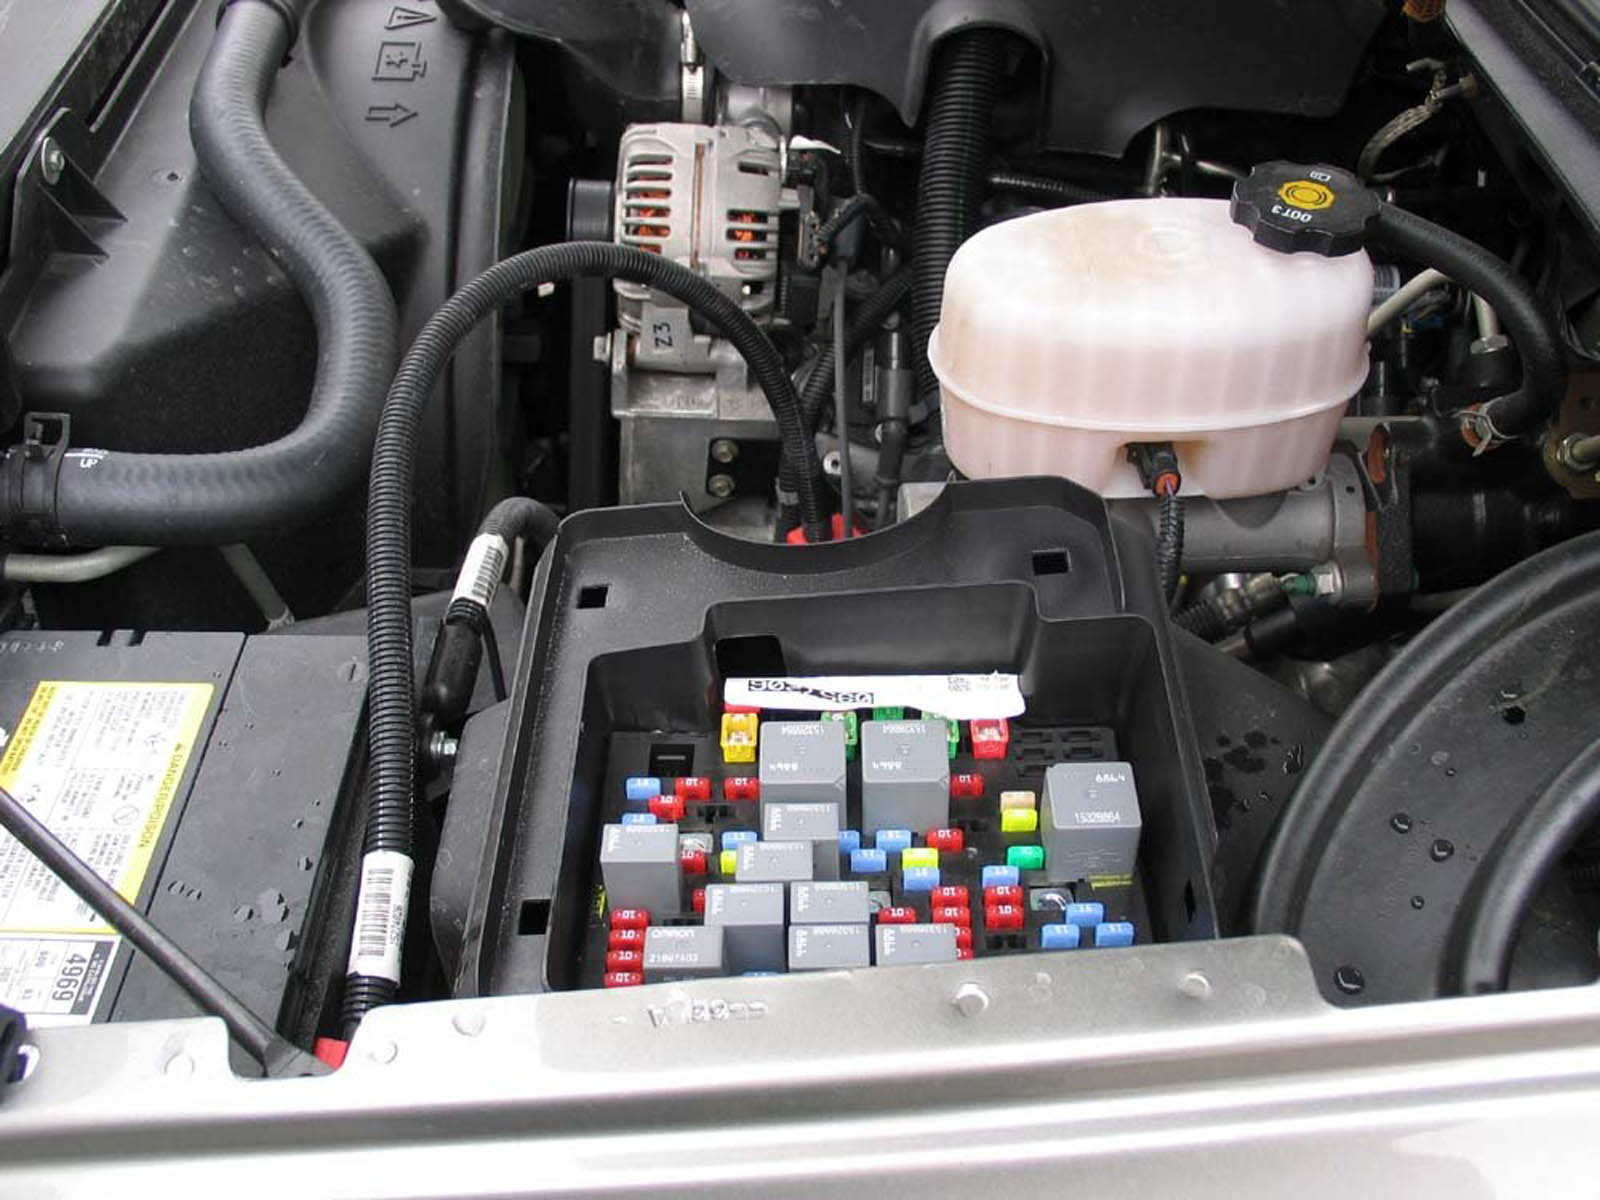 MMMay 27 Fuse Box 04 69845 chevrolet silverado gmt800 1999 2006 fuse box diagram chevroletforum 2003 chevy silverado fuse box diagram at couponss.co